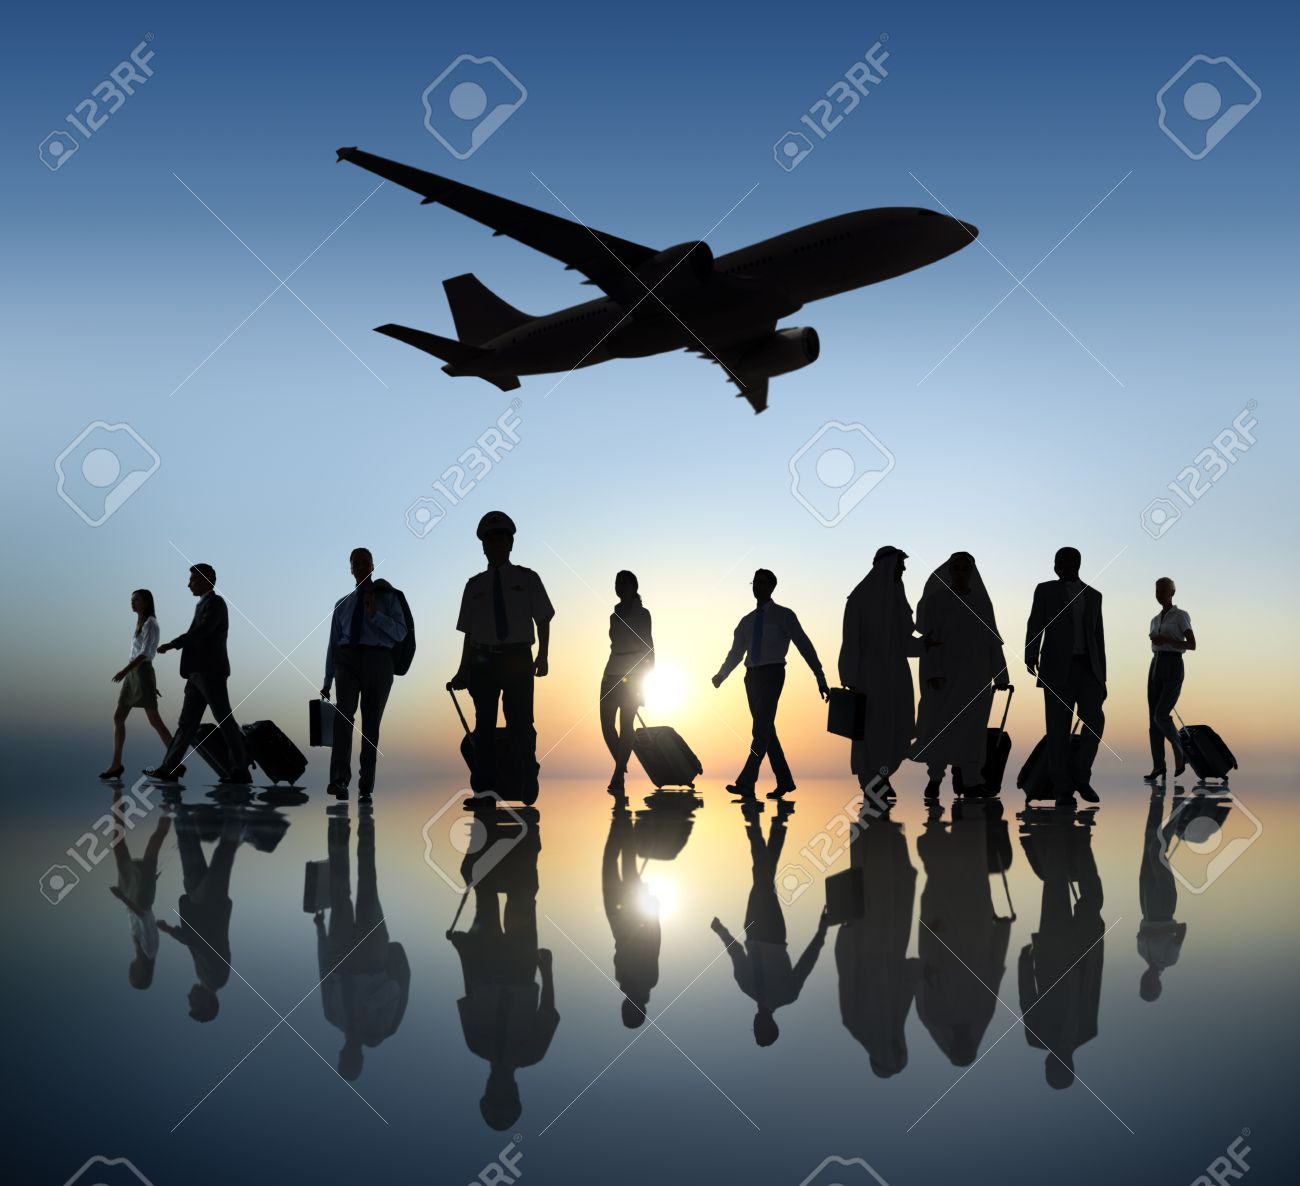 Group of Business People Traveling - 31308405